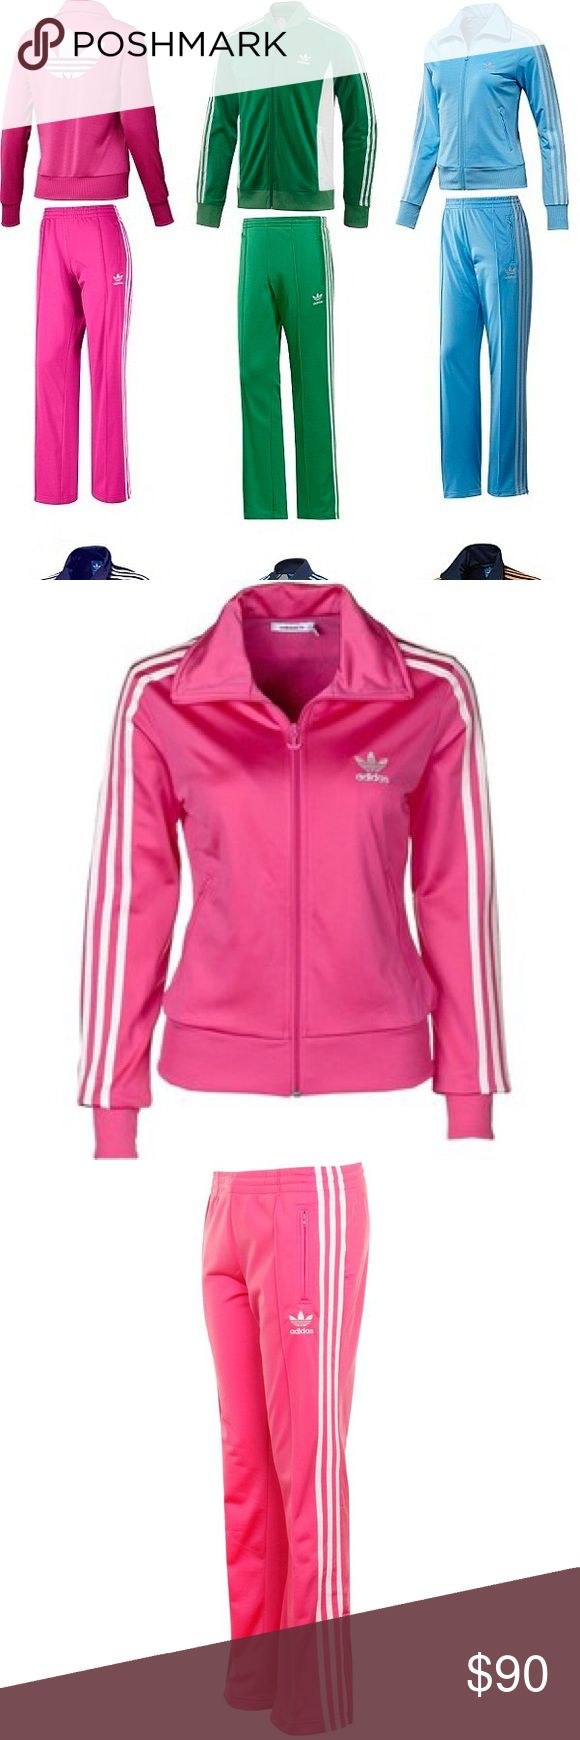 Adidas Classic Firebird Tracksuit Sweatsuit Pink Adidas Classic Firebird Tracksuit Pants & Jacket - RARE  Classic Vintage Firebird, Original Trefoil Design.  Zippers at bottom of legs.  Classic Run DMC Style.  Color - Pink & White. Ladies / Women's - Size Medium M  Key Words - Sweatpants / Sweatsuit / Workout / Yoga / Active / Casual / Hip Hop / 80's / Breakdance/ B Boy Girl / Throwback  Please FOLLOW ME & check out the other items in my closet. BUNDLE & SAVE!! I offer a discount when items…